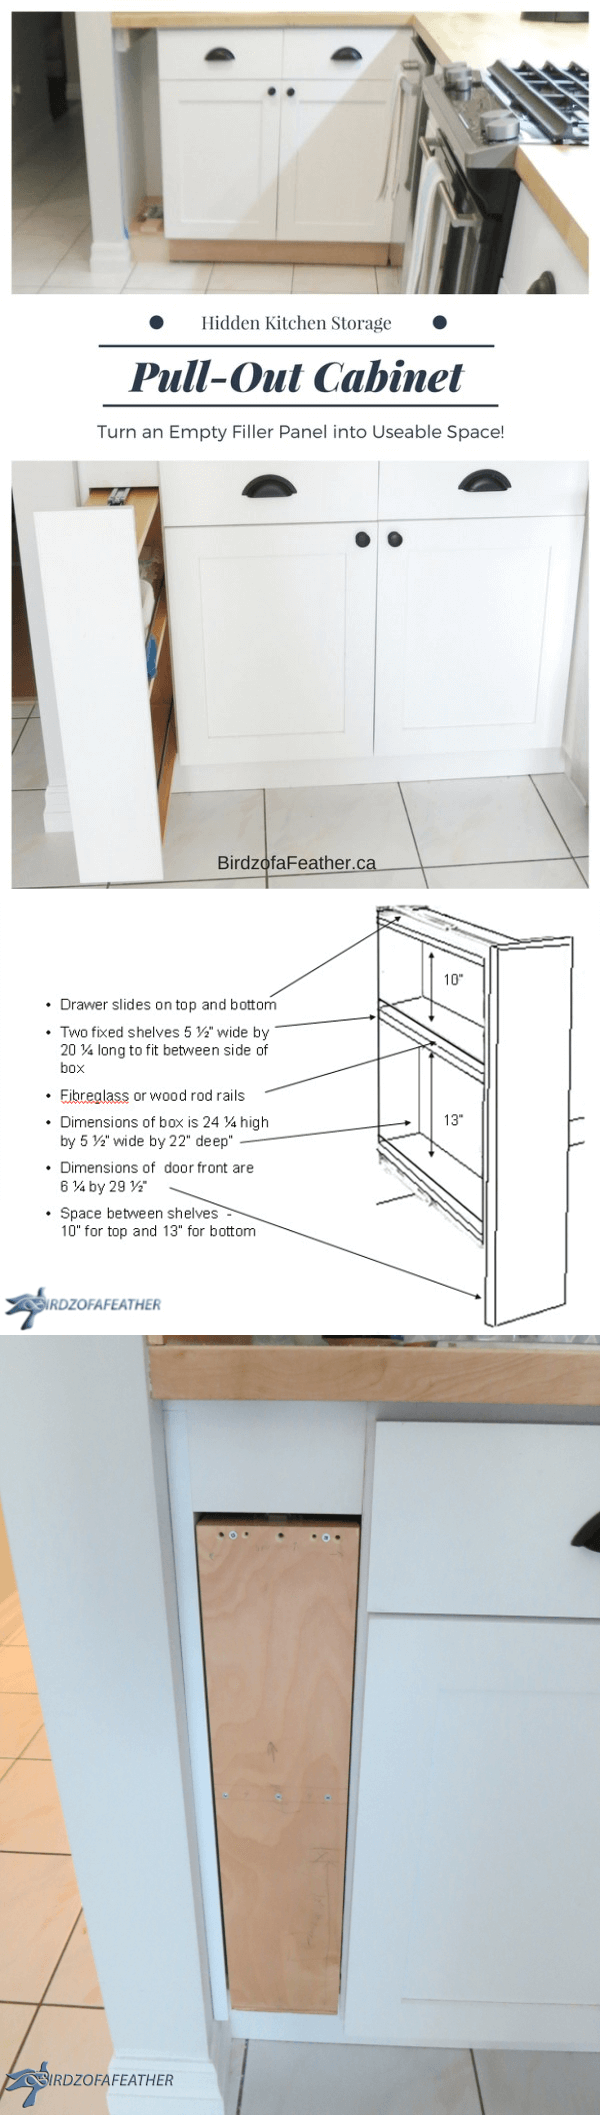 Process Filler Strip into a Pull Out Cabinet